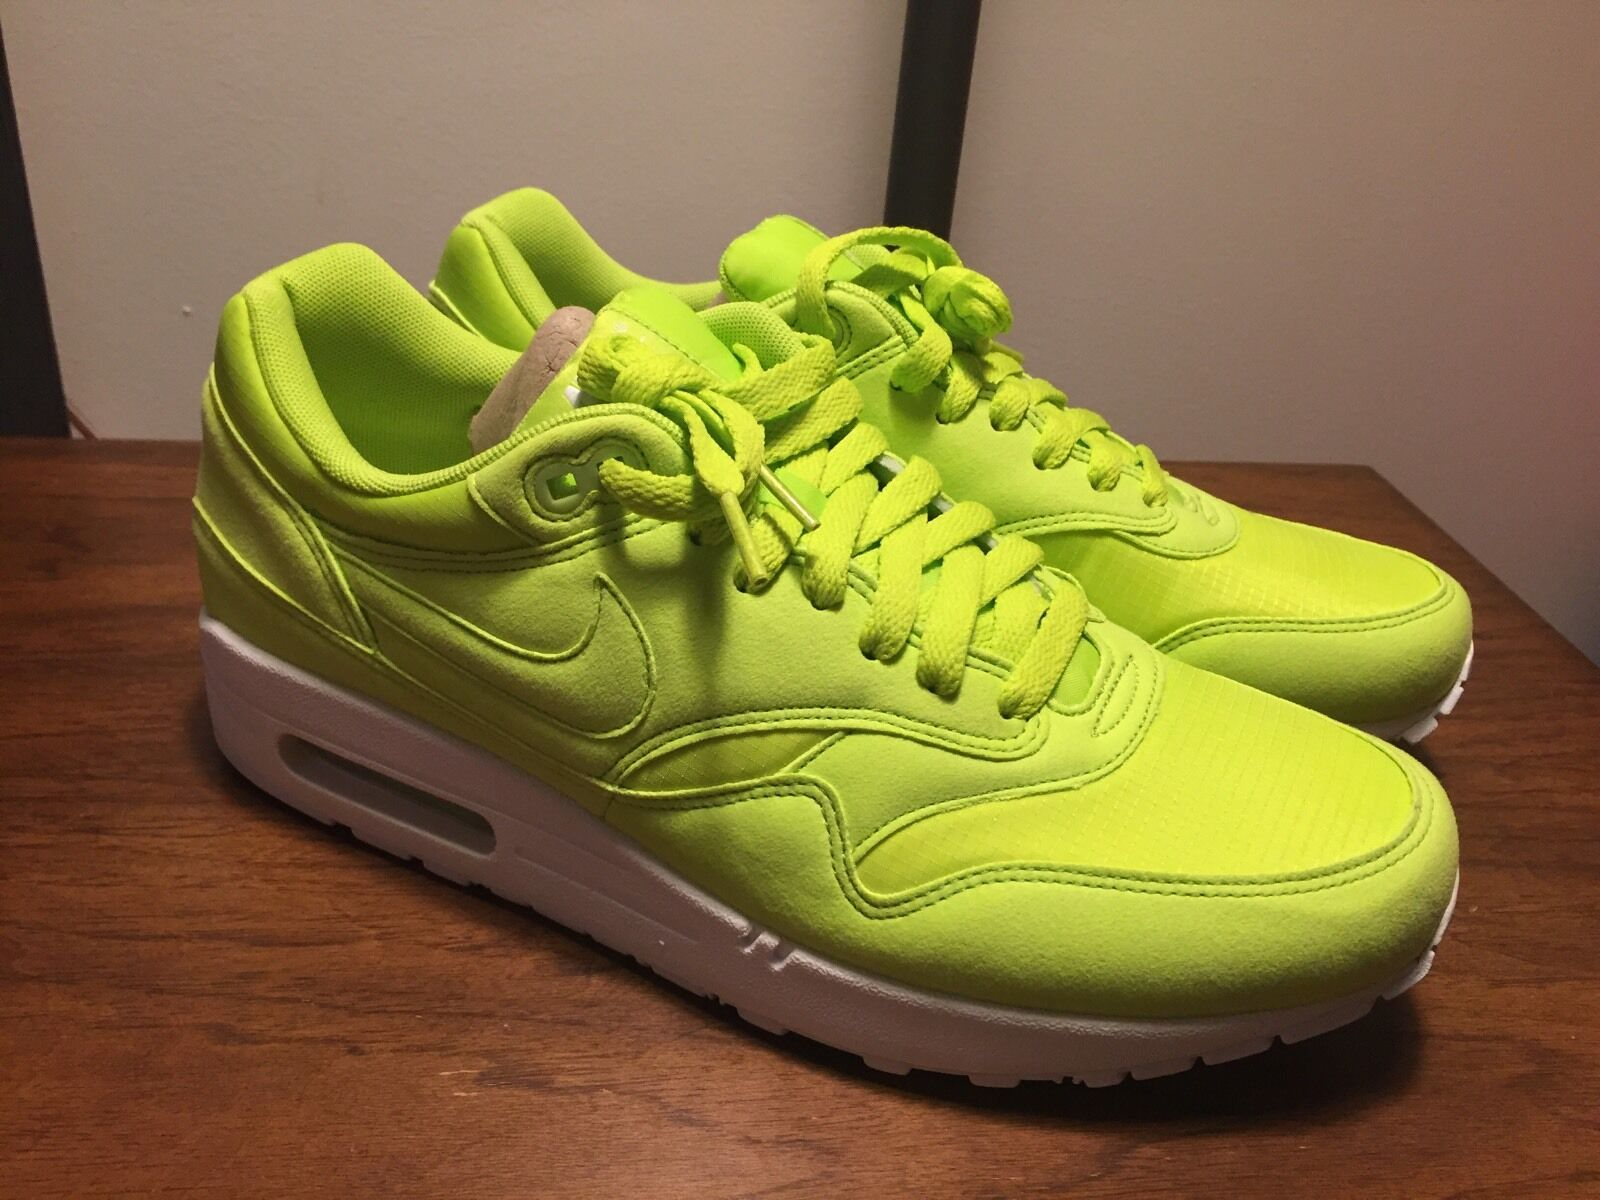 best-selling model of the brand NEW Nike Air Max 1 One Sneaker Green Tennis Ball NIB DS 9M Supreme 308866-331